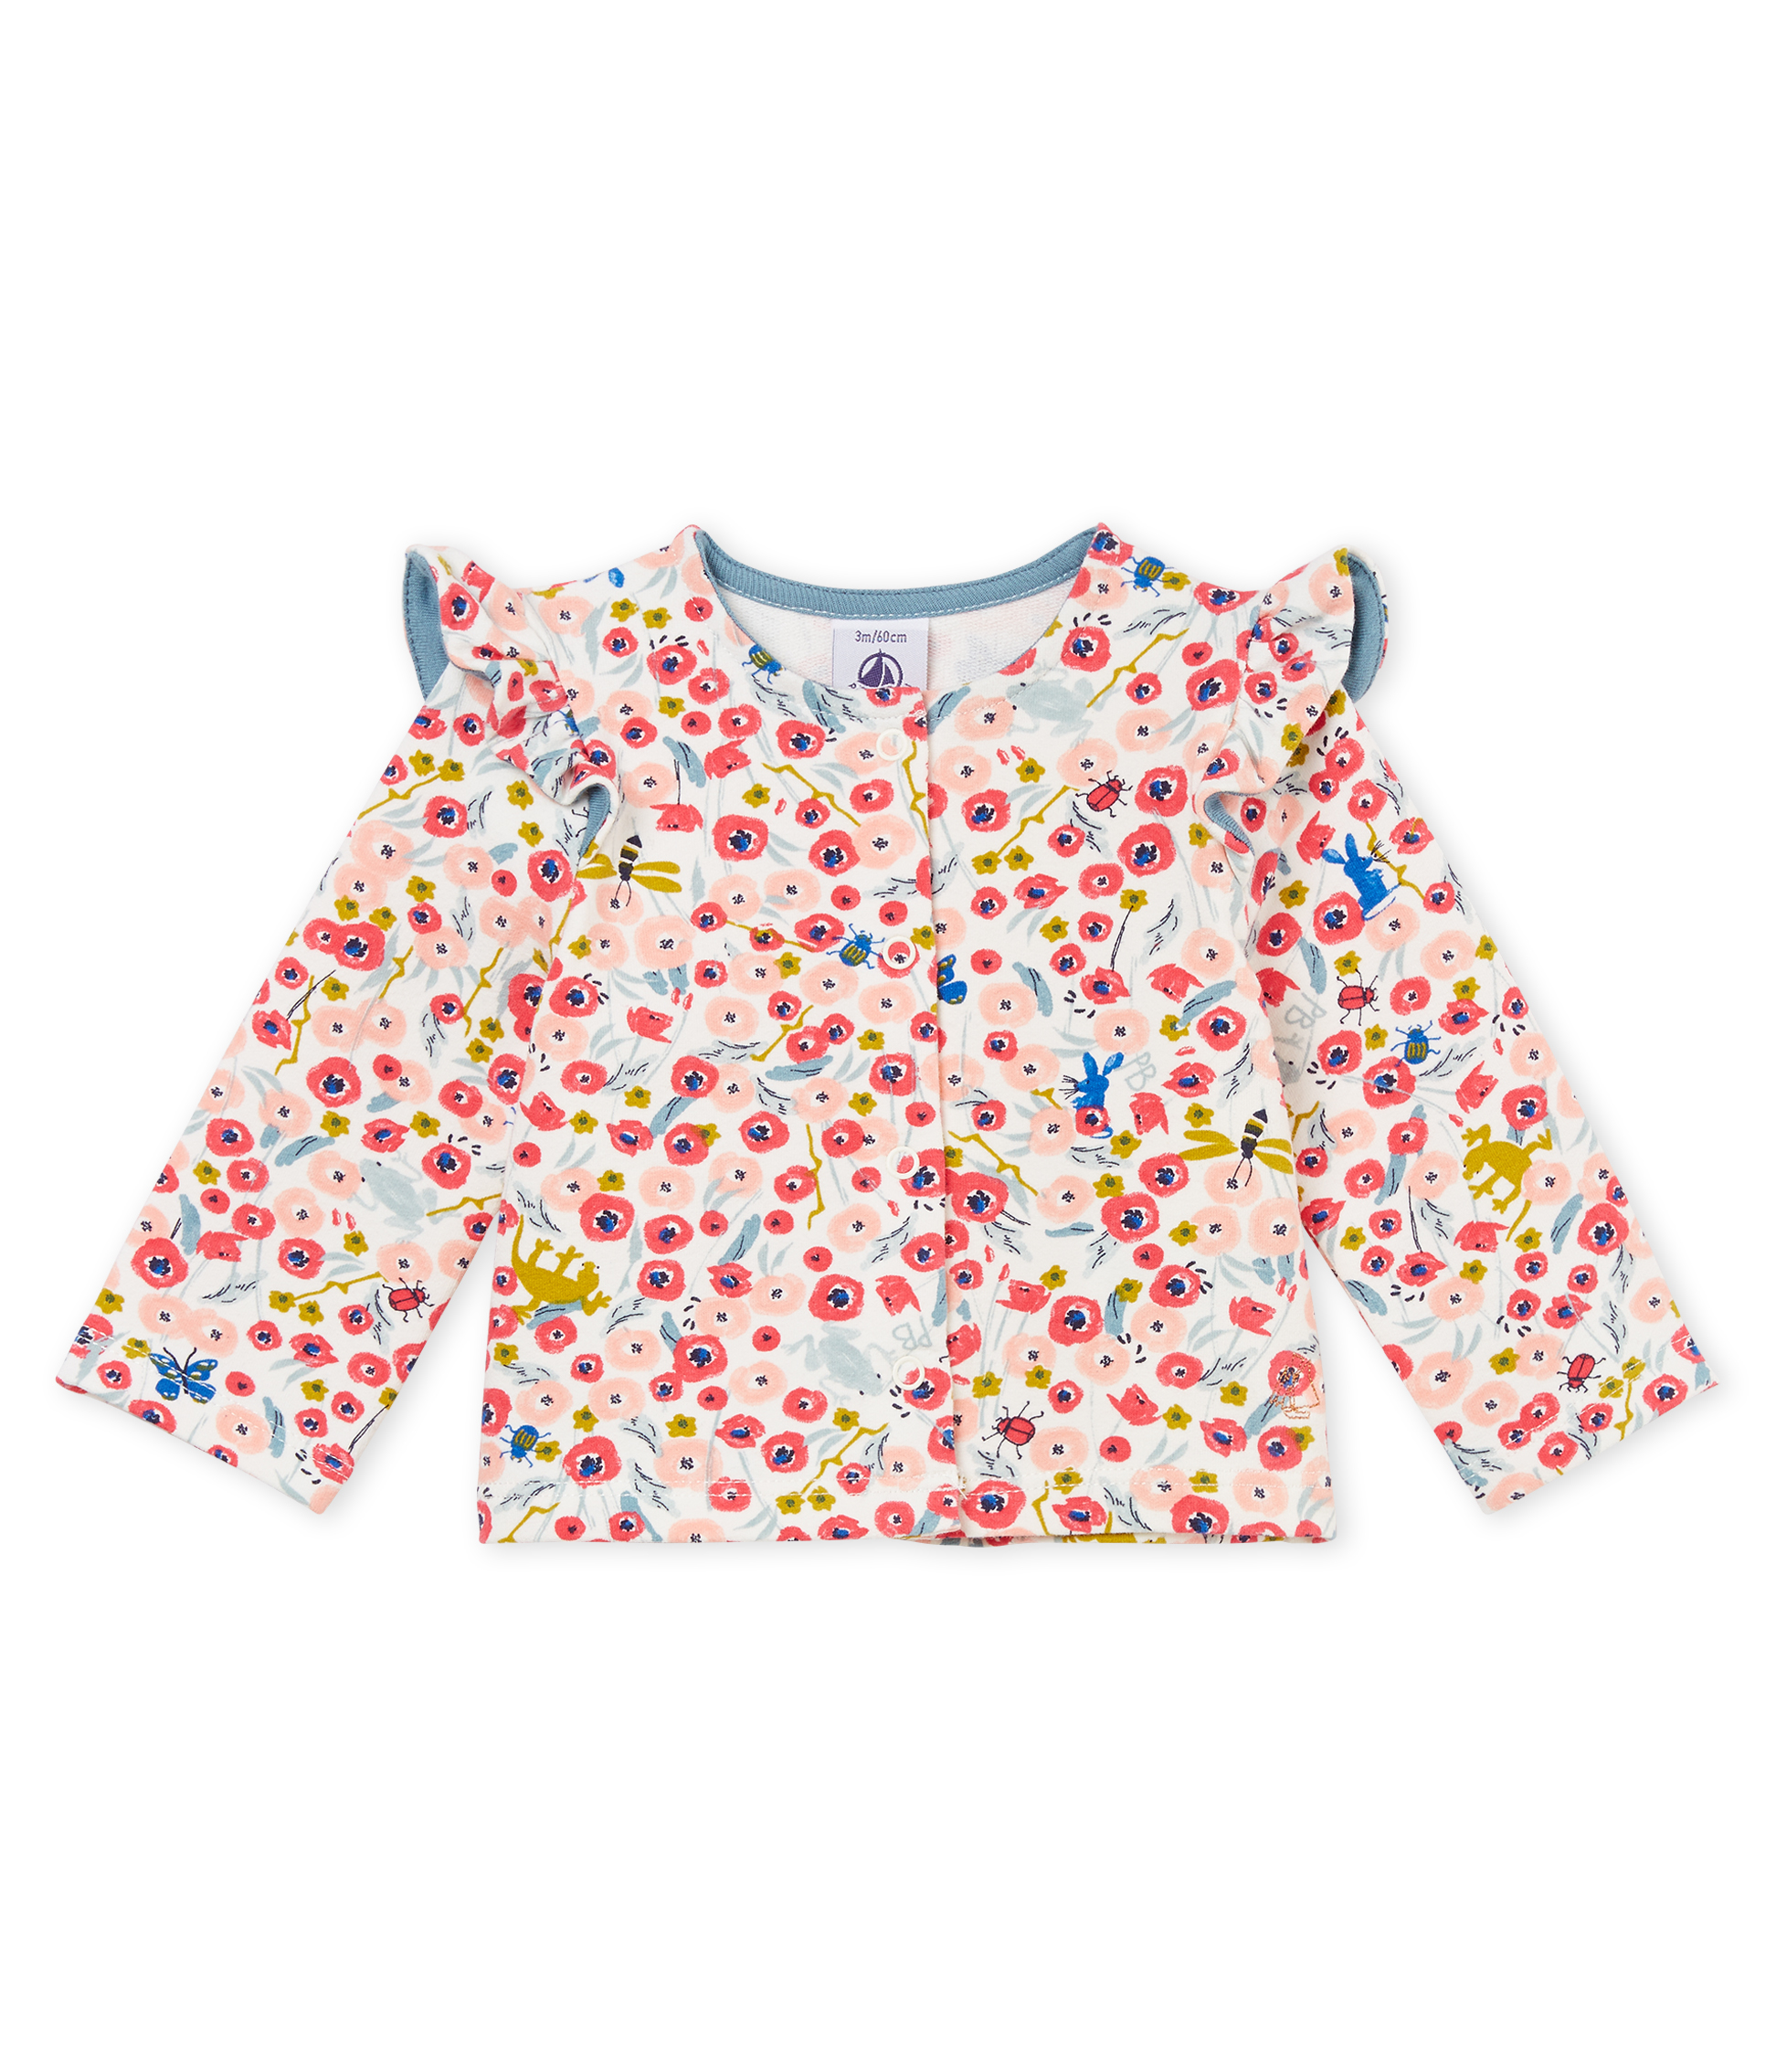 Baby girls' printed knit cardigan